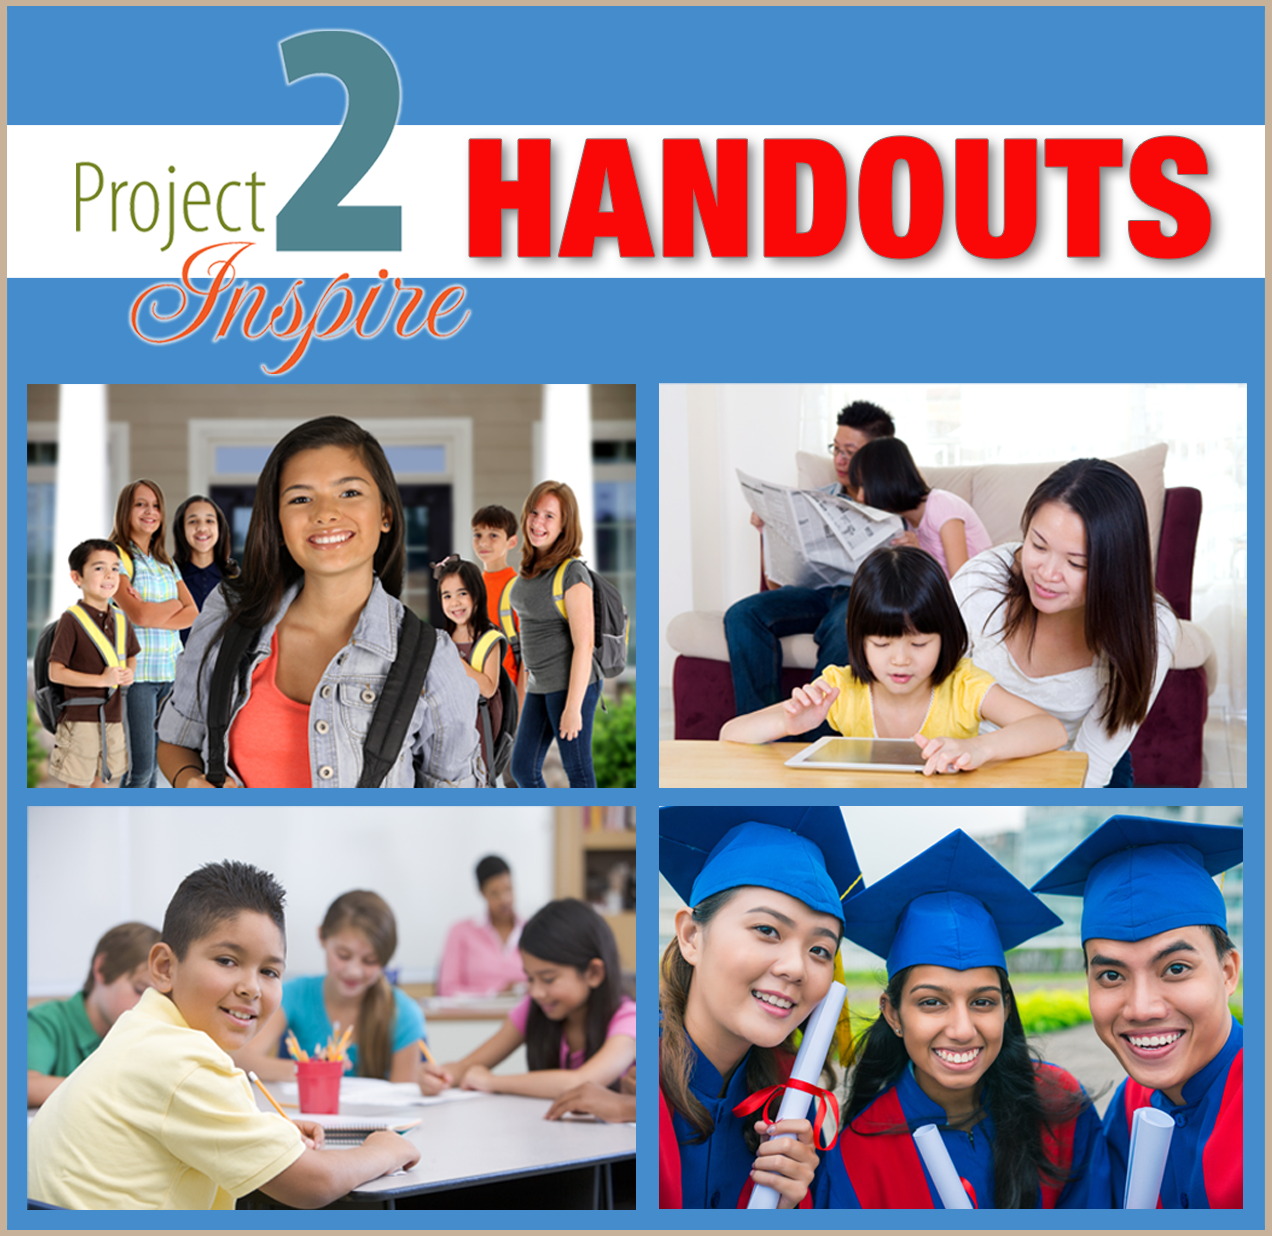 Project2Inspire_Handouts_Banner